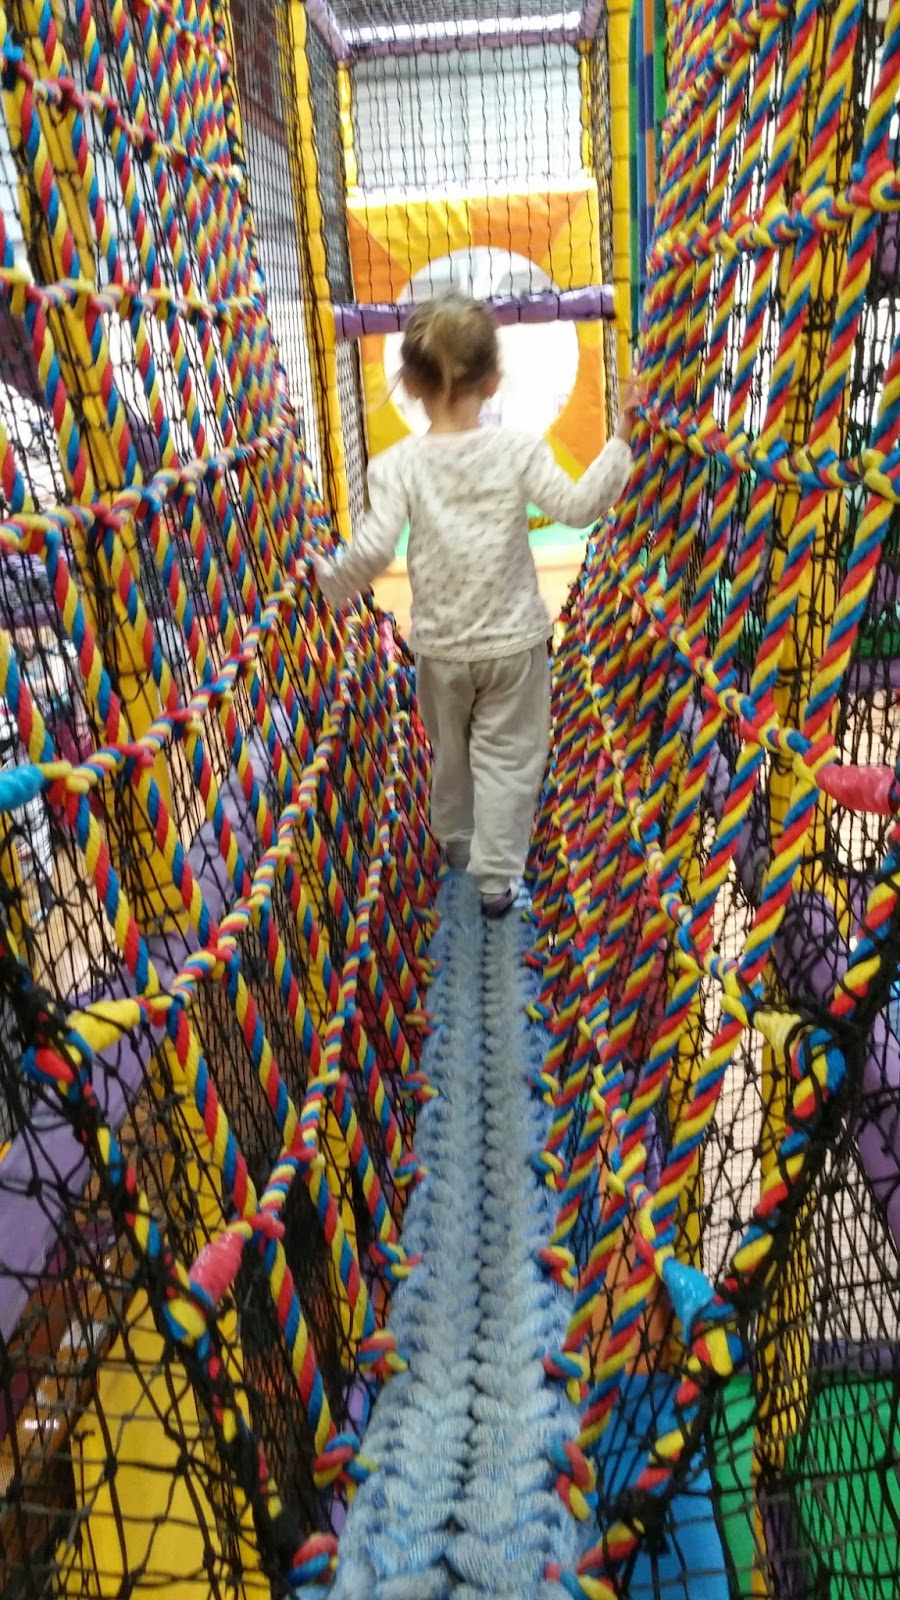 Soft play rope bridge